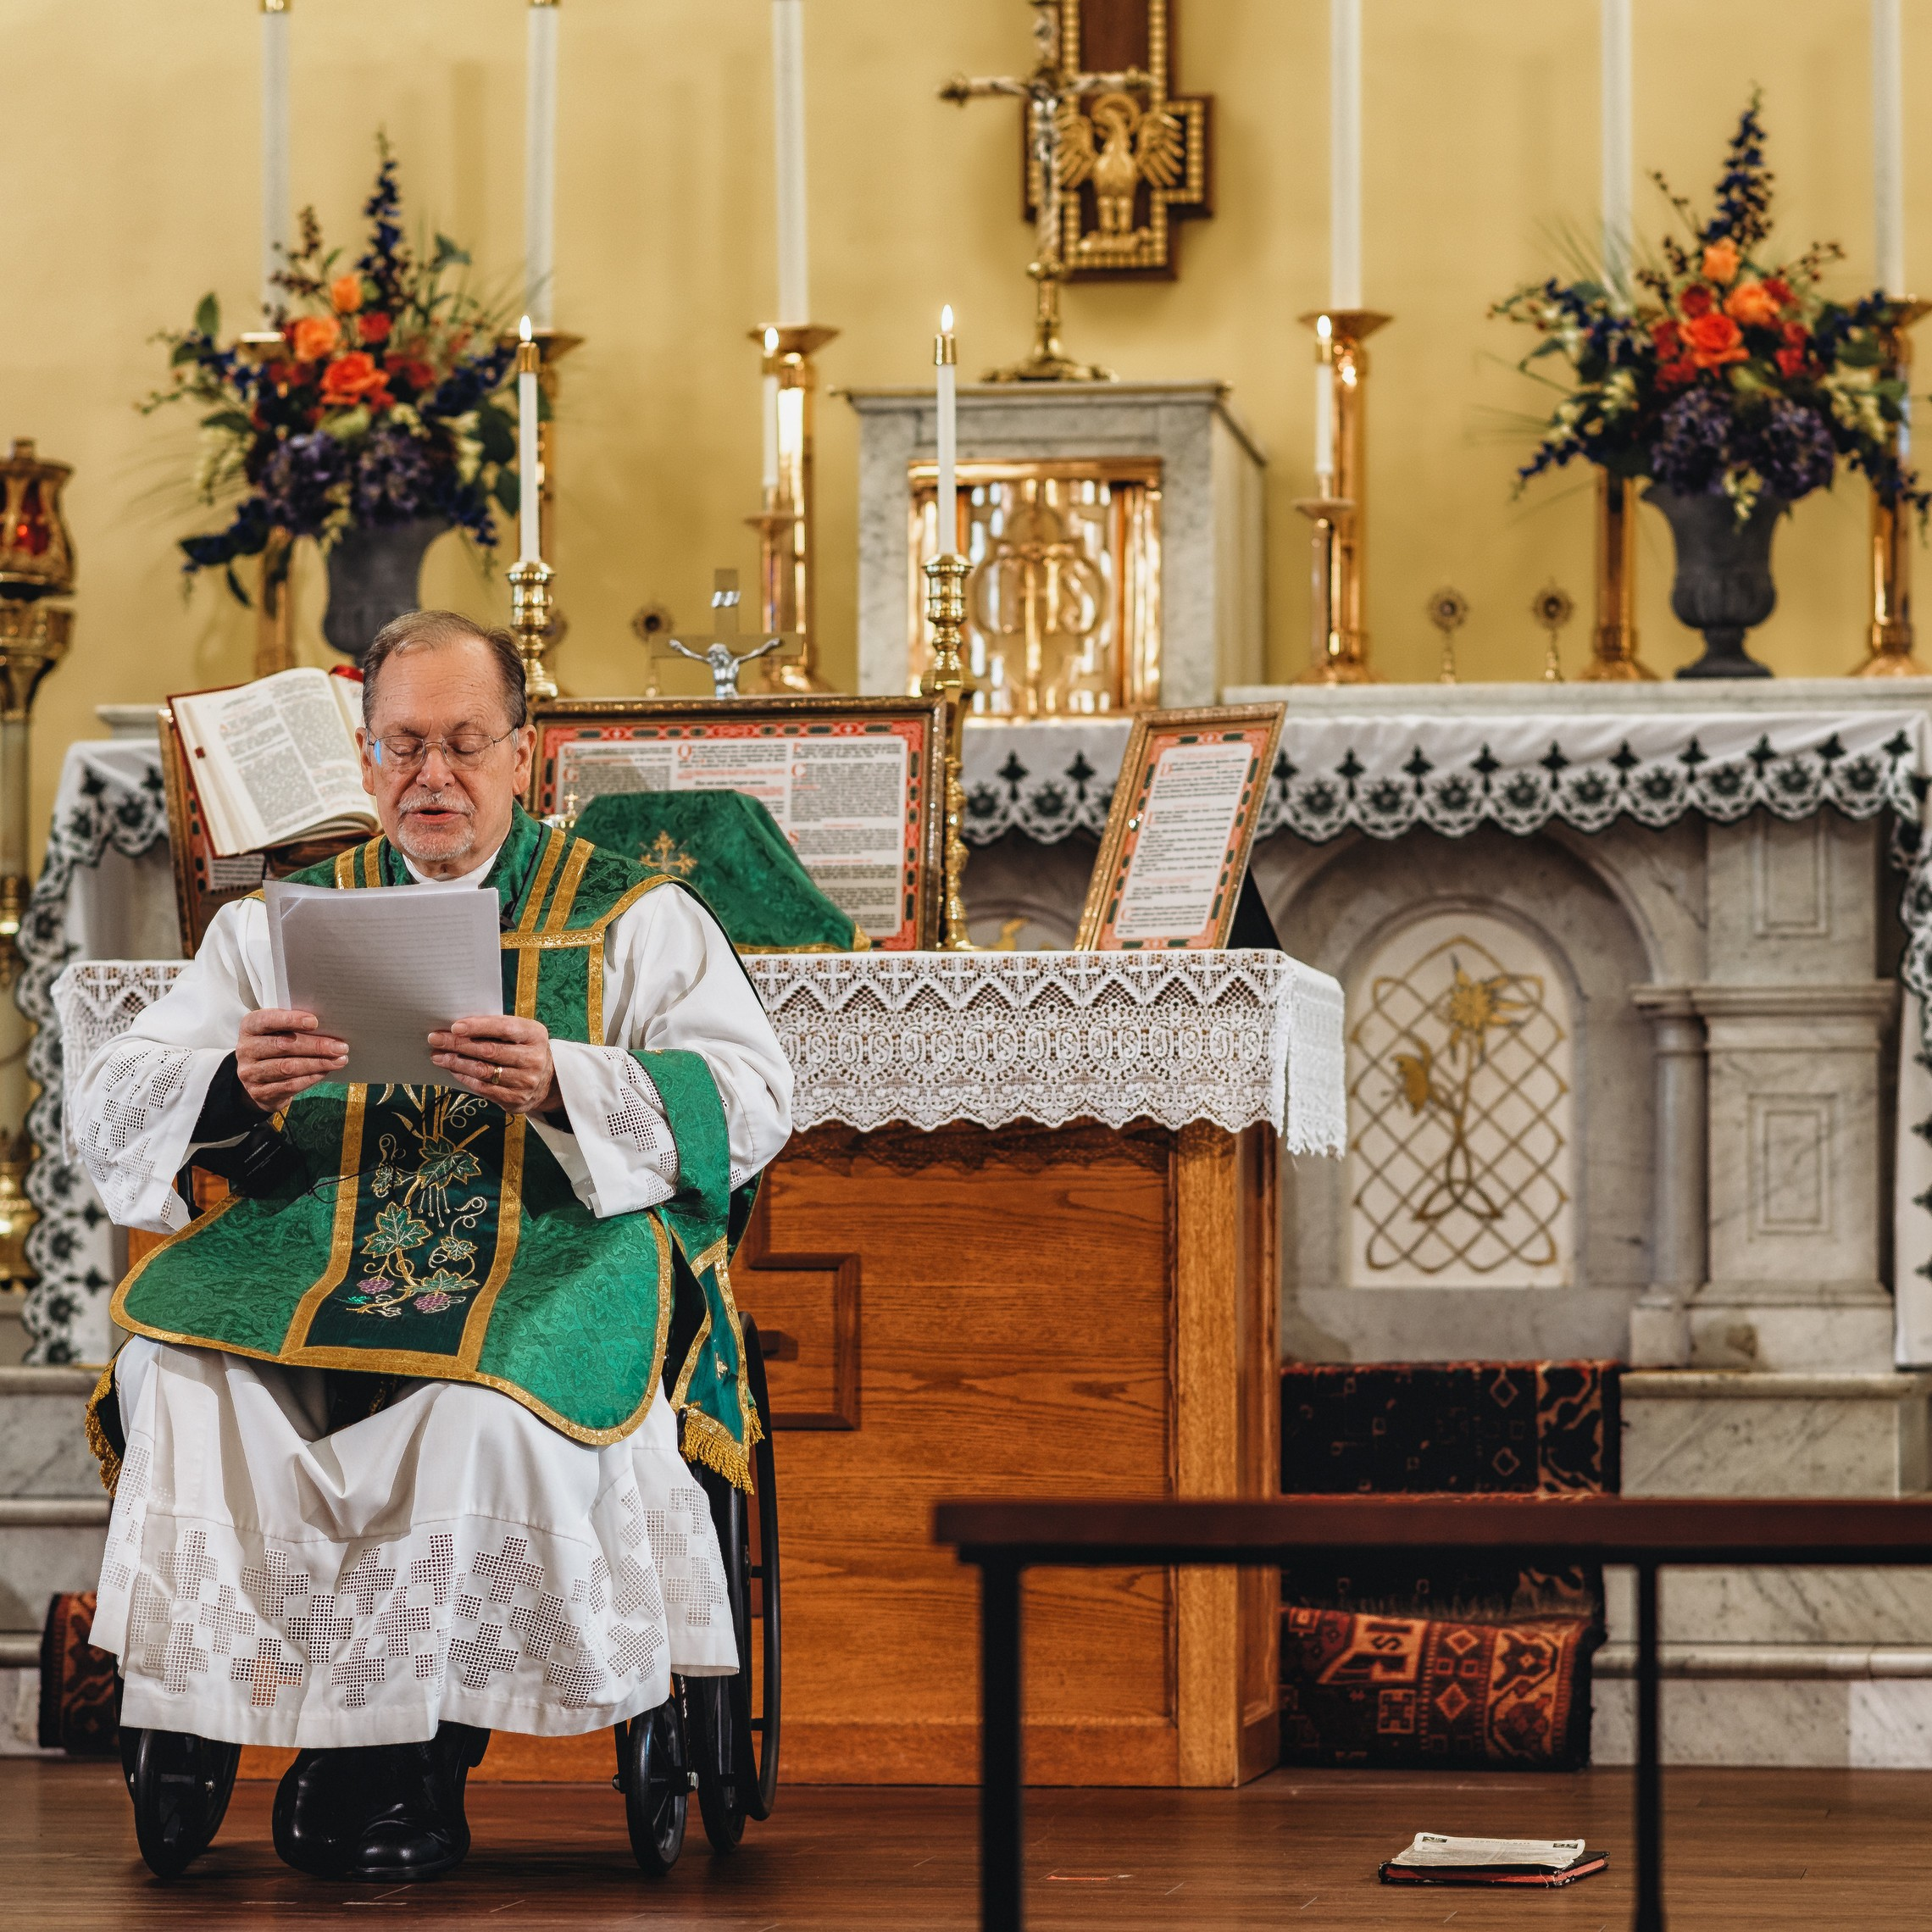 Fr Klein Latinmass Wheelchair